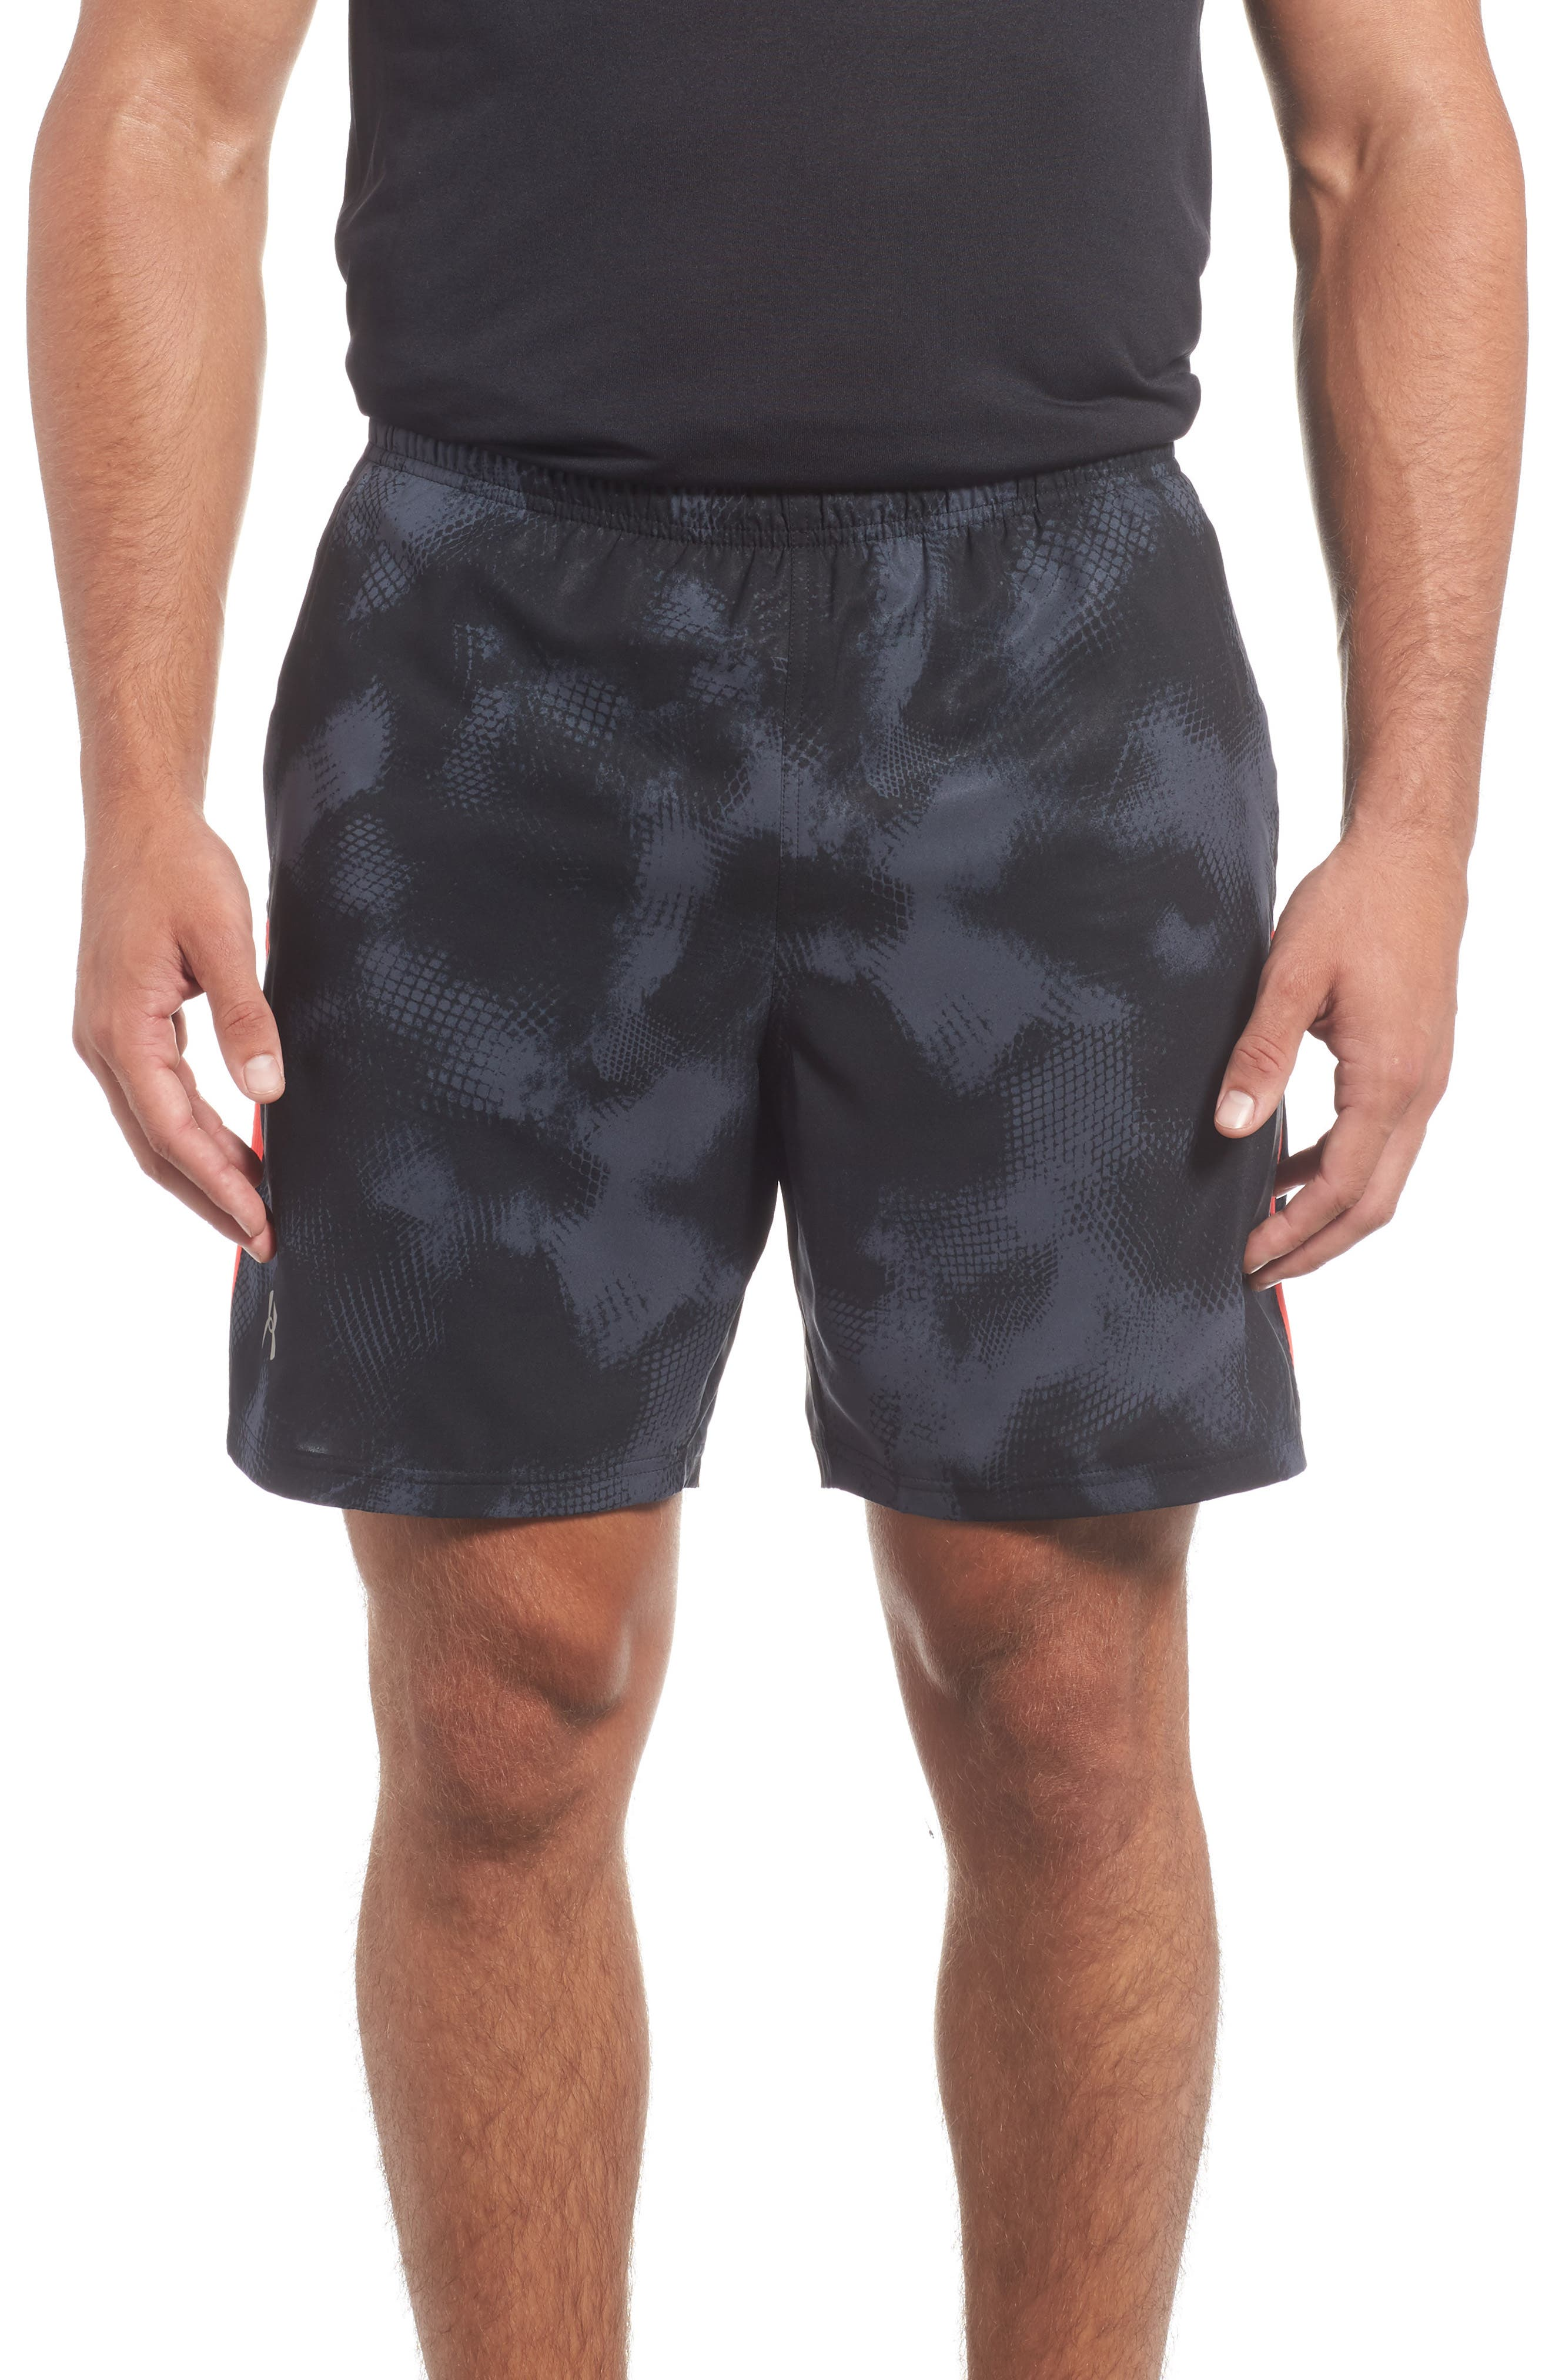 Launch Running Shorts,                         Main,                         color, 002